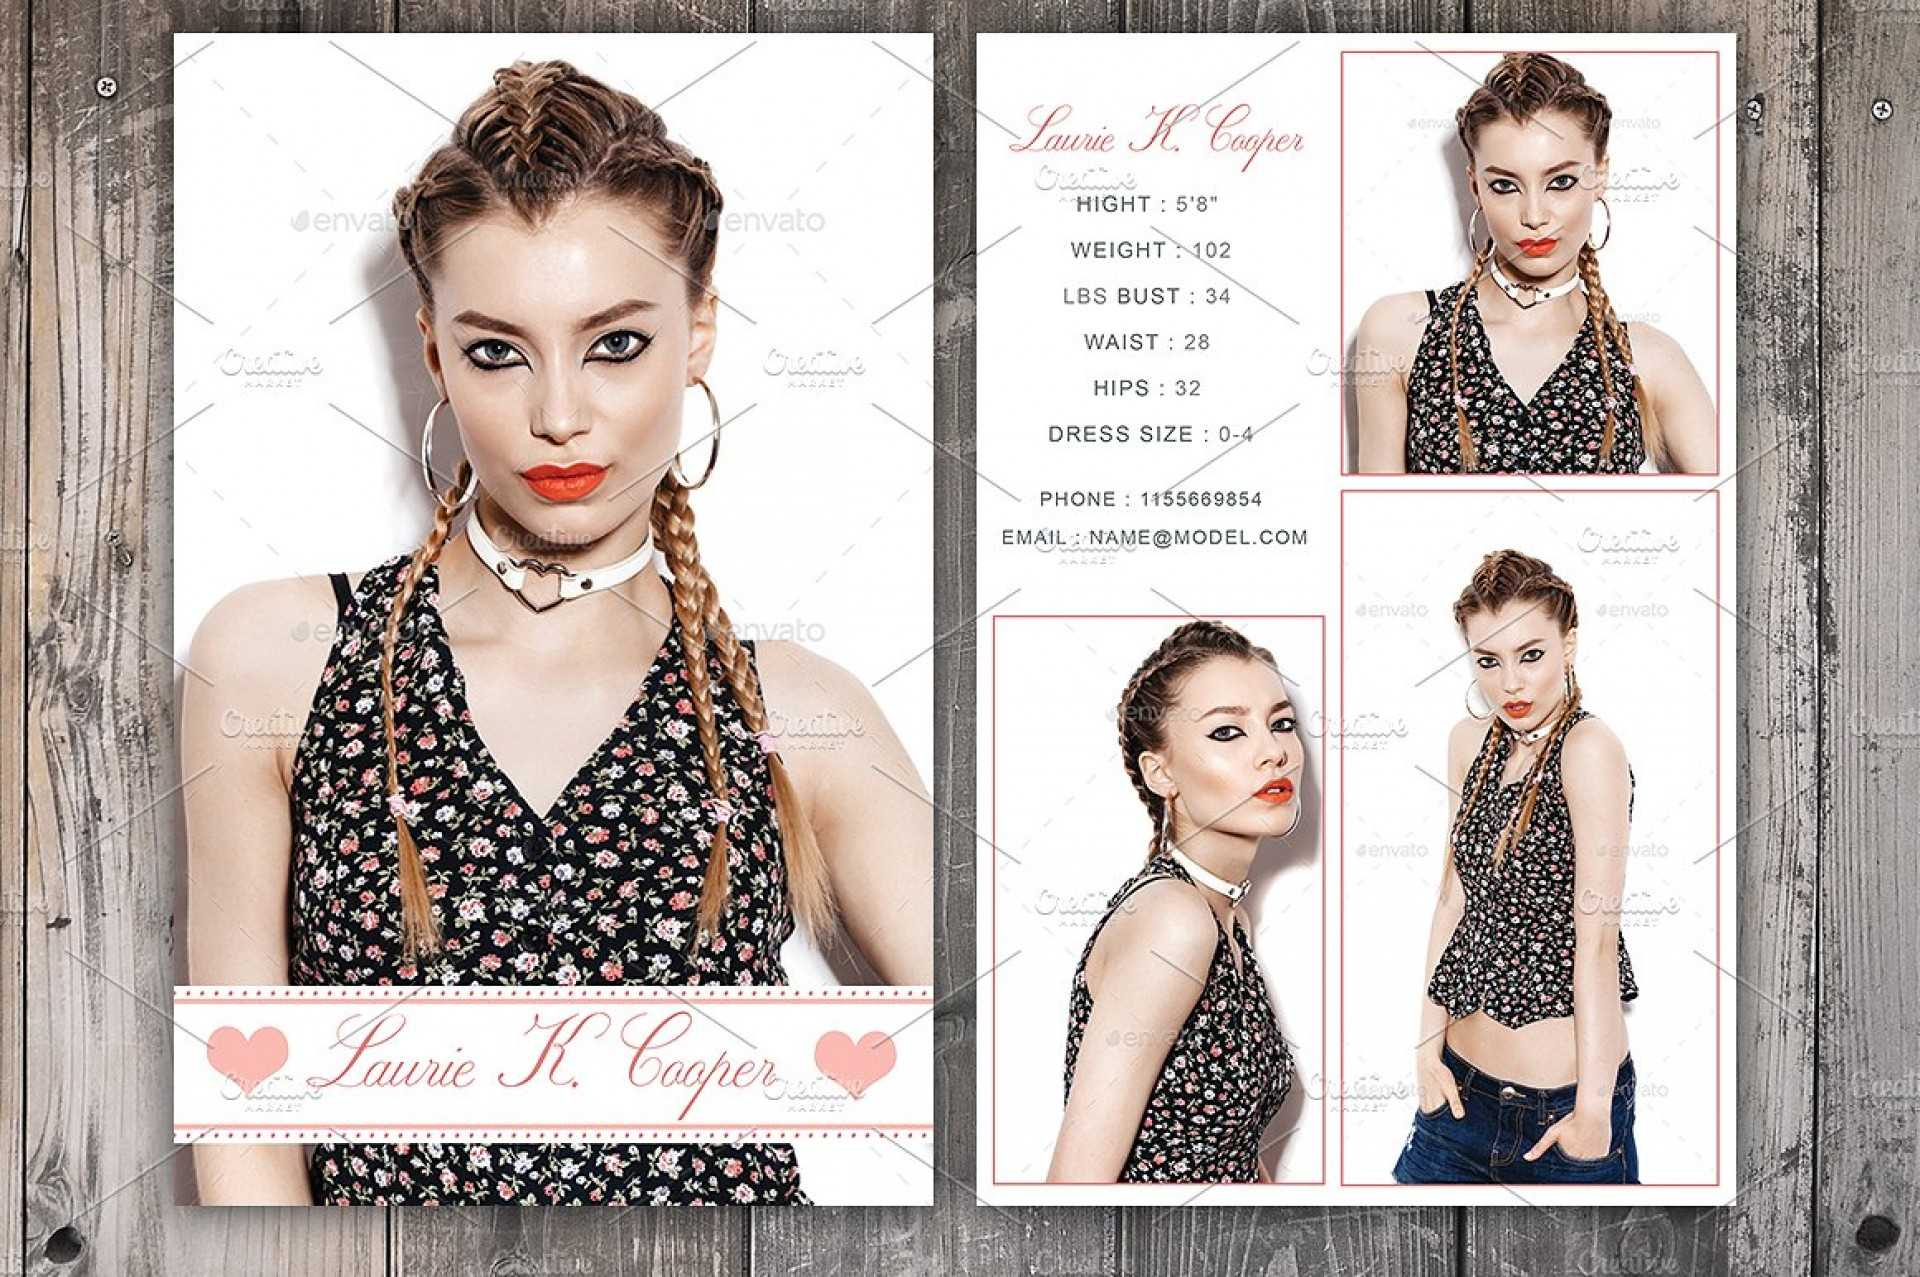 Free Comp Card Template Brochure Templates Microsoft Word For Comp Card Template Download